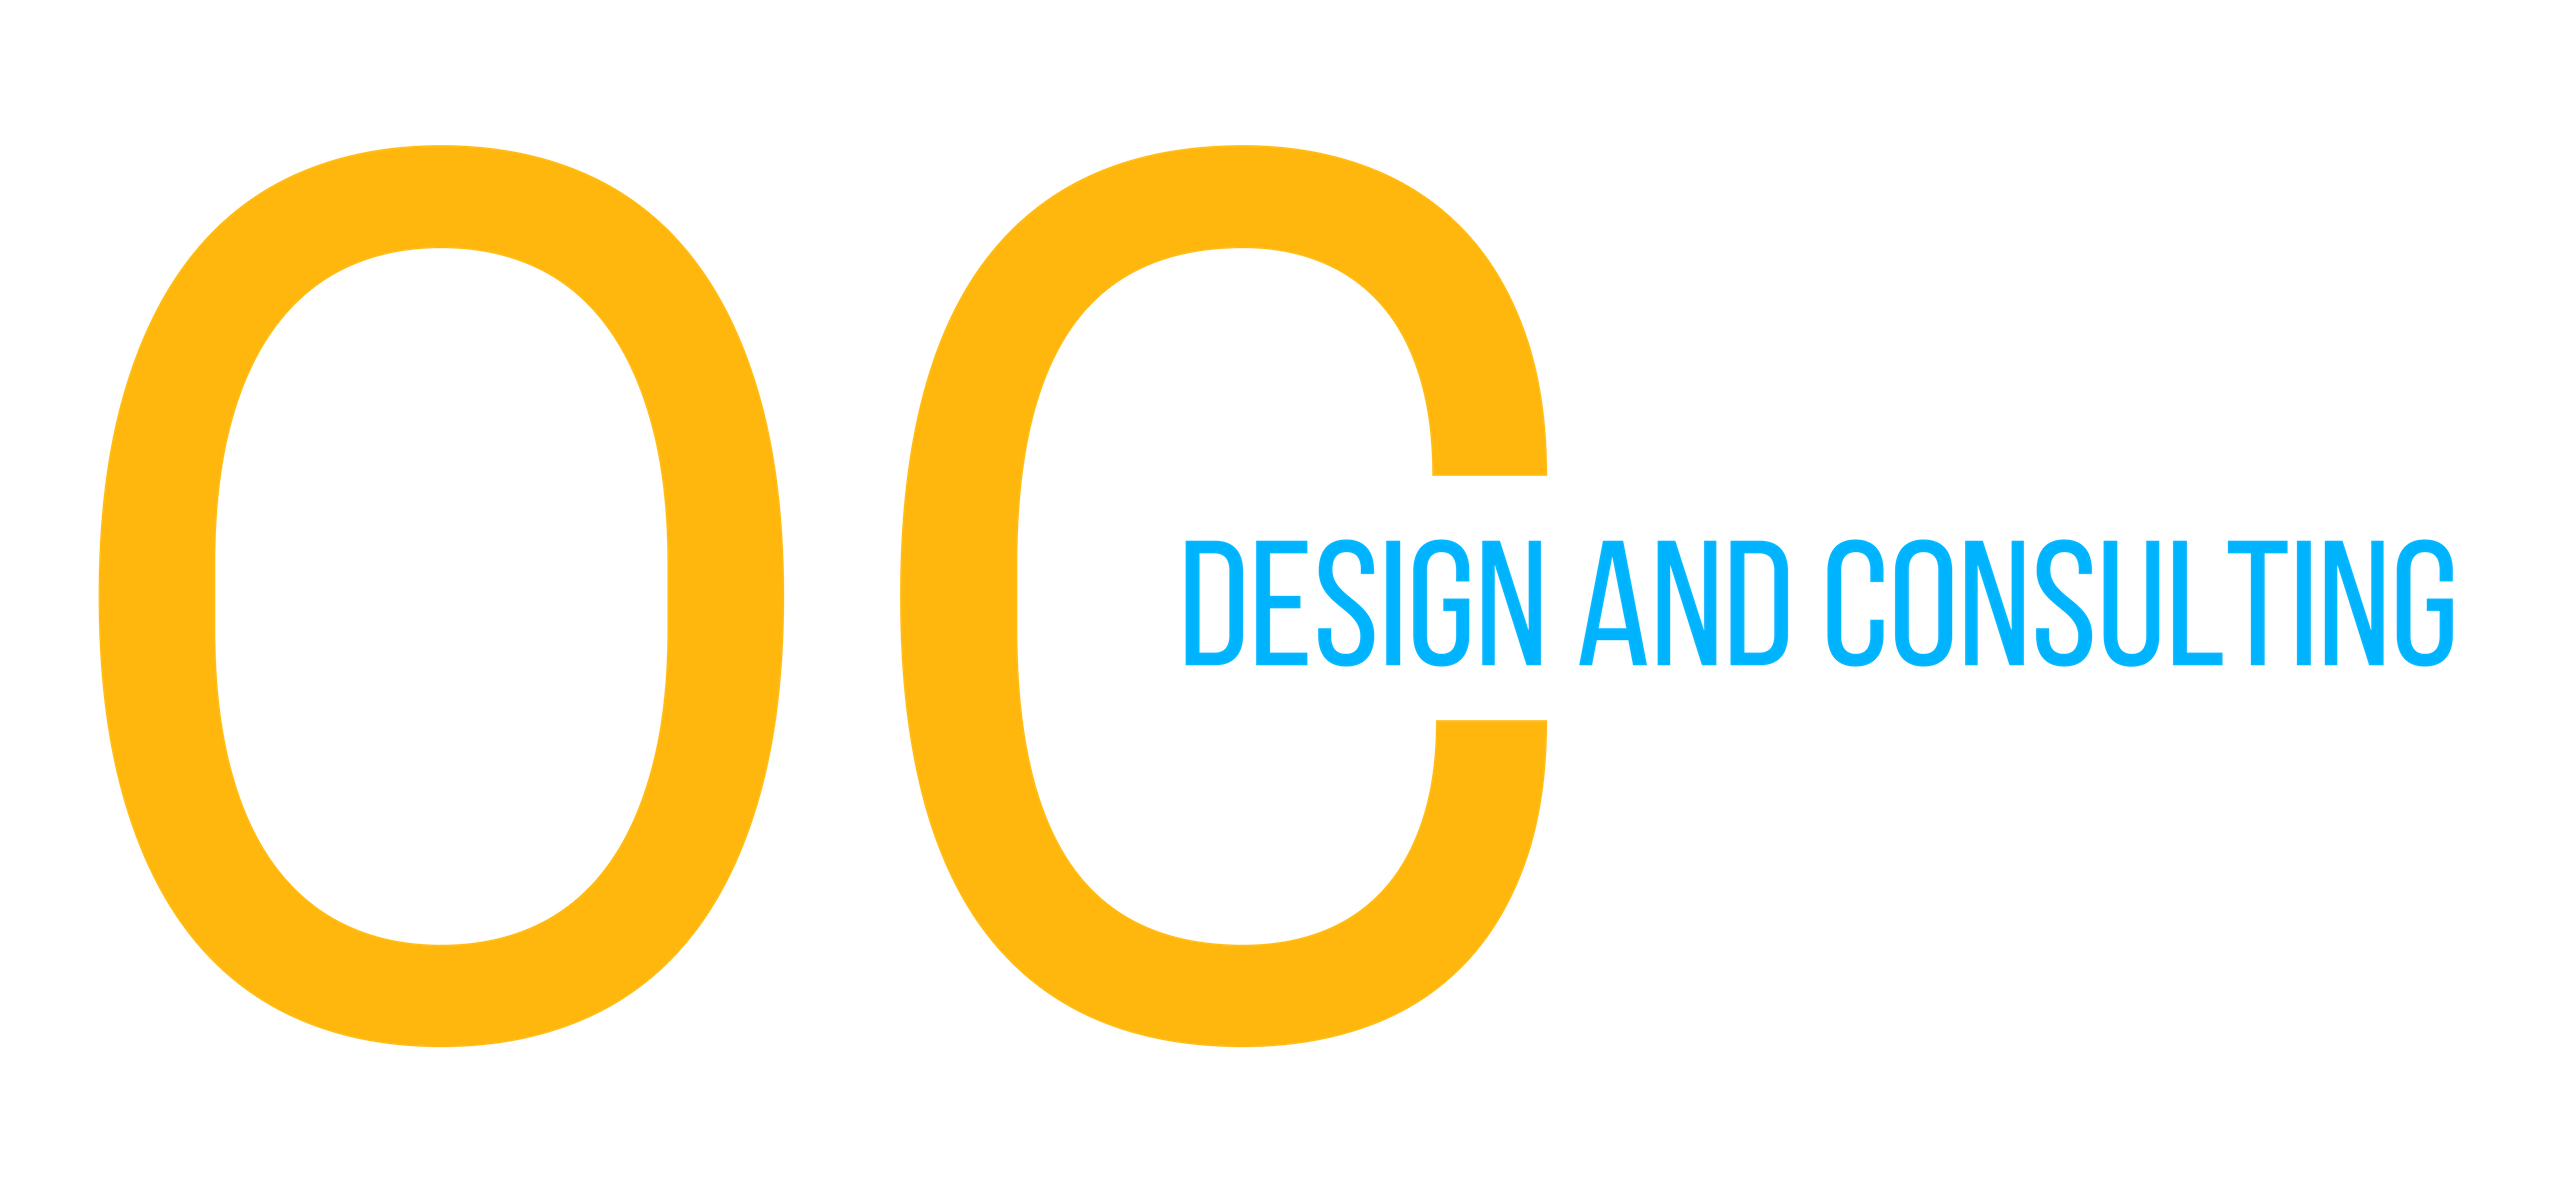 OC Design and Consulting